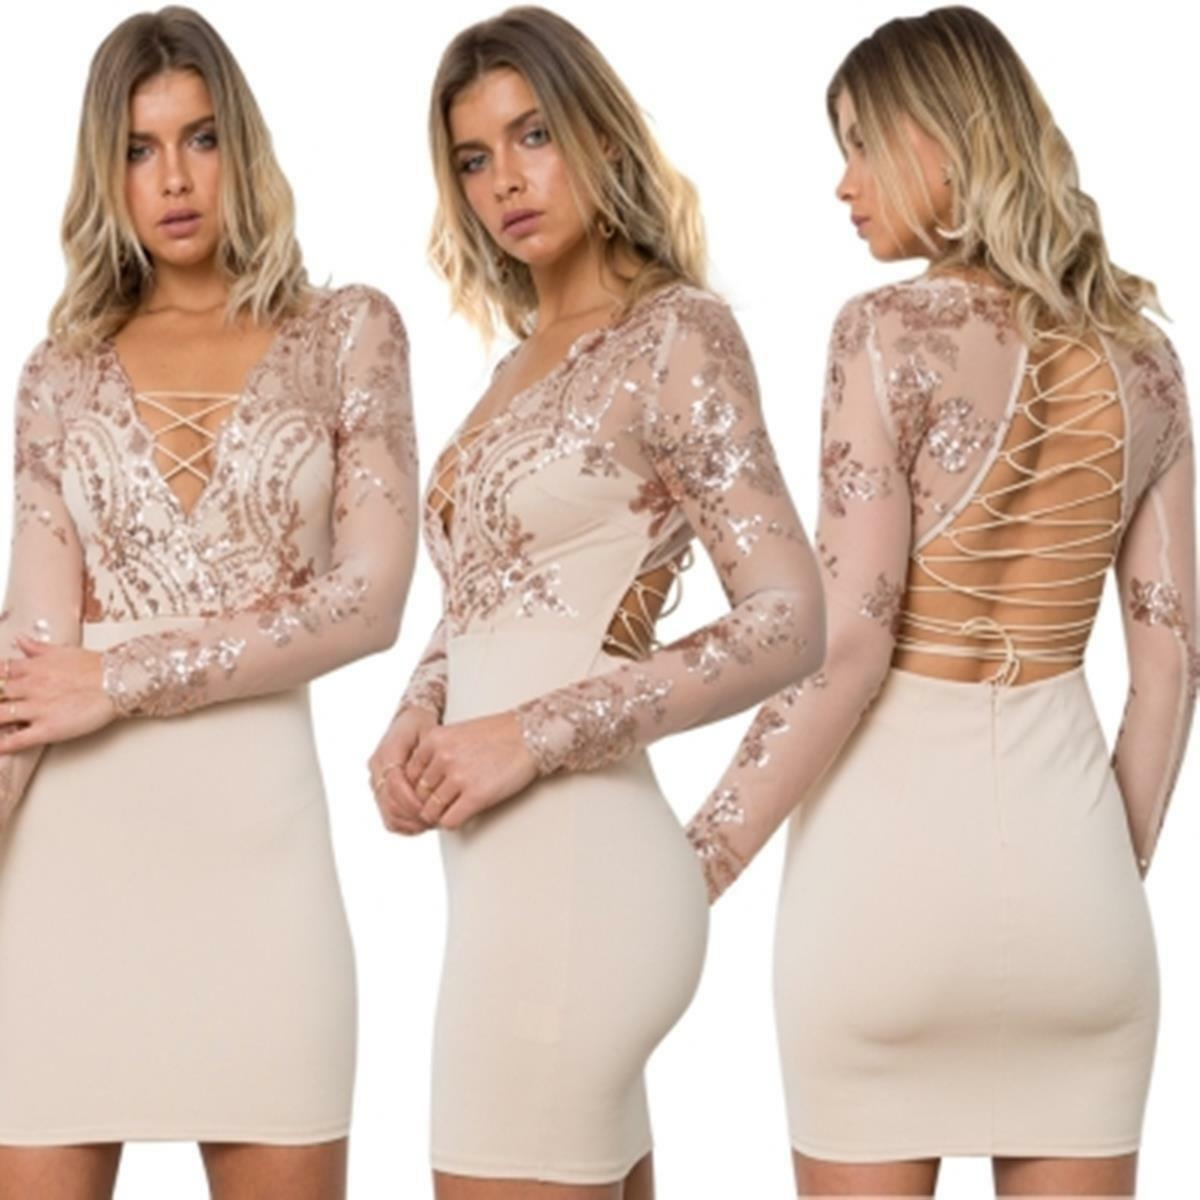 Abito Aperto ricamato Aderente Nudo Pailette Cerimonia Party Lace Sequin Dress M